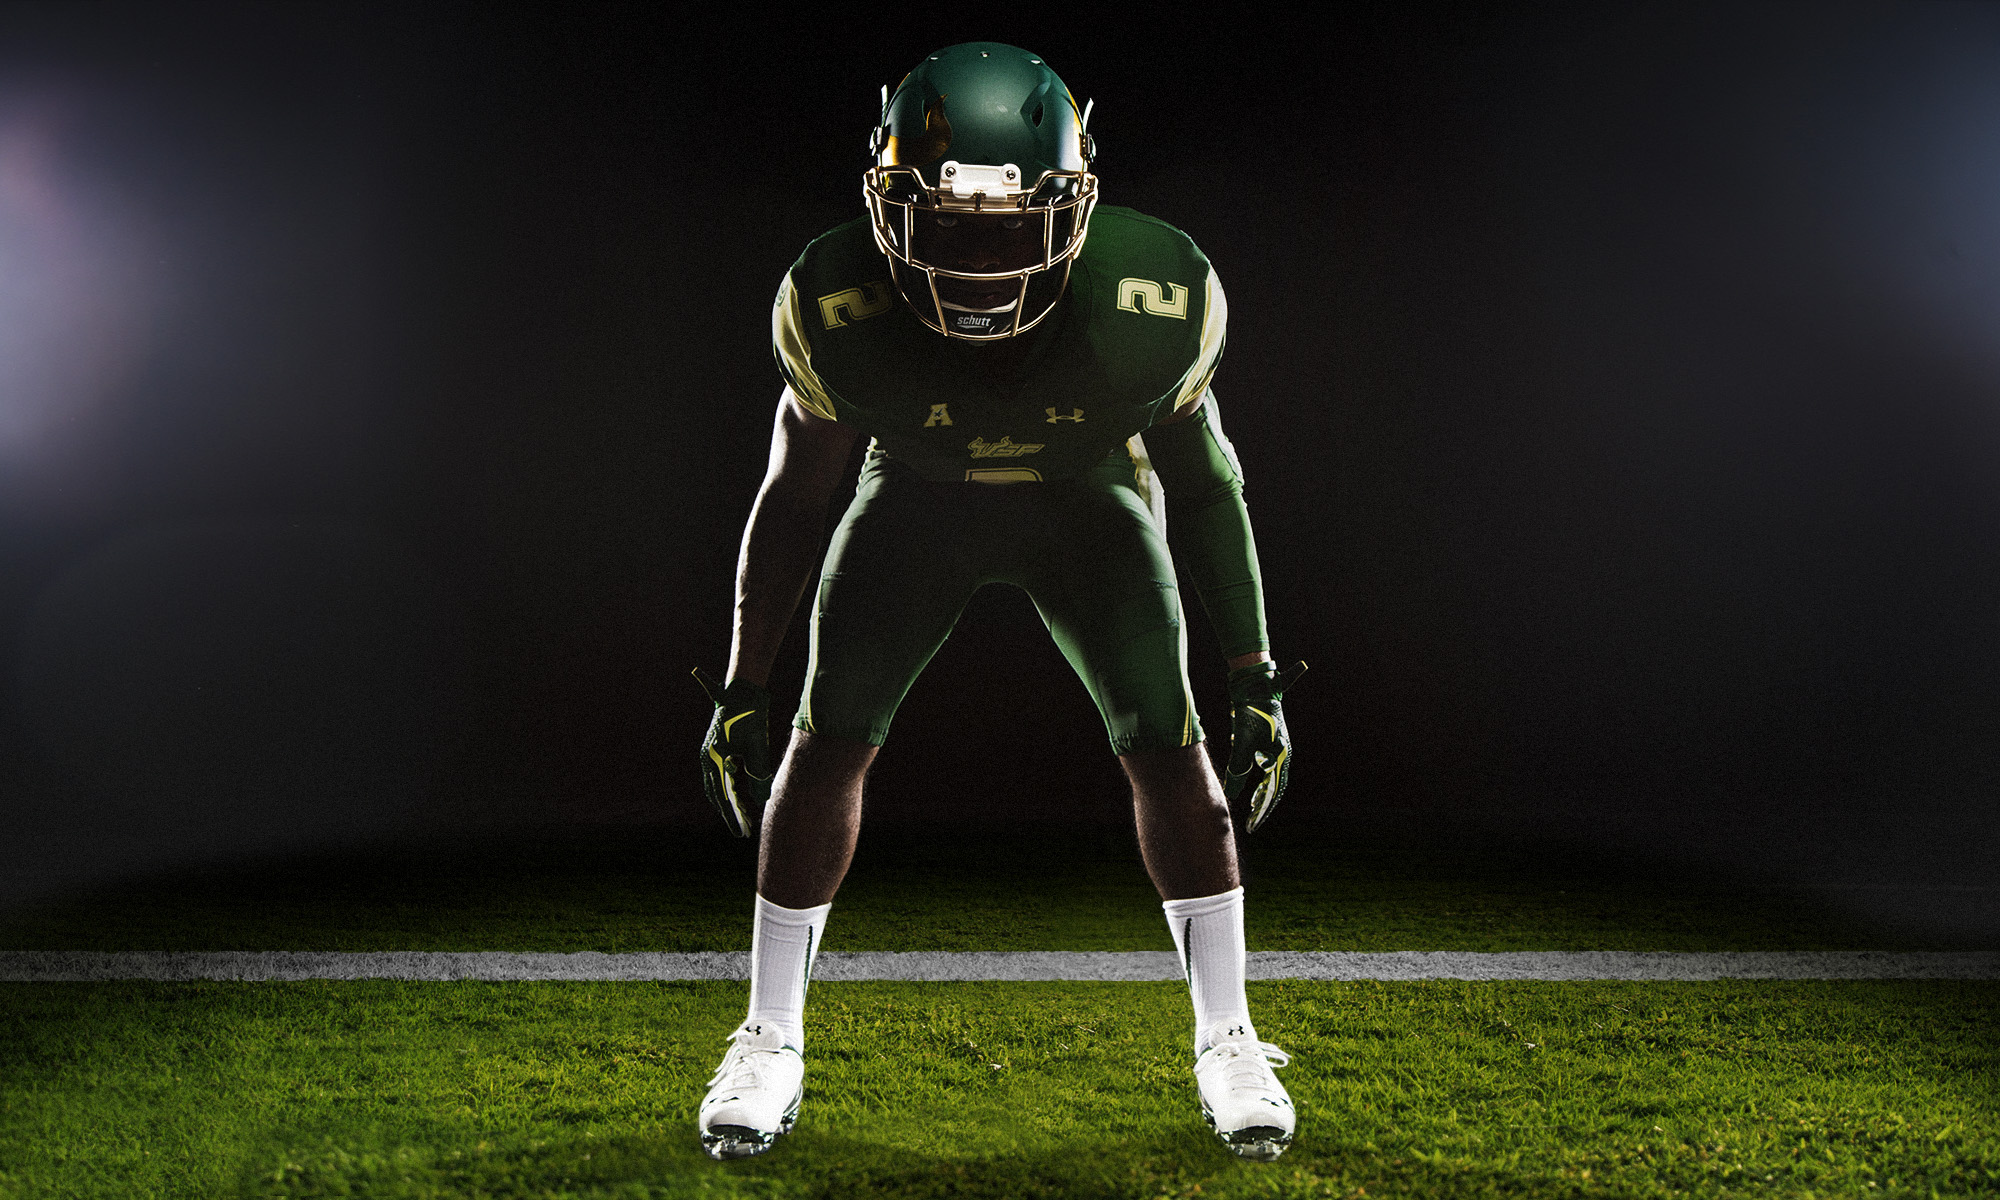 USF-Football-Green-126-grass